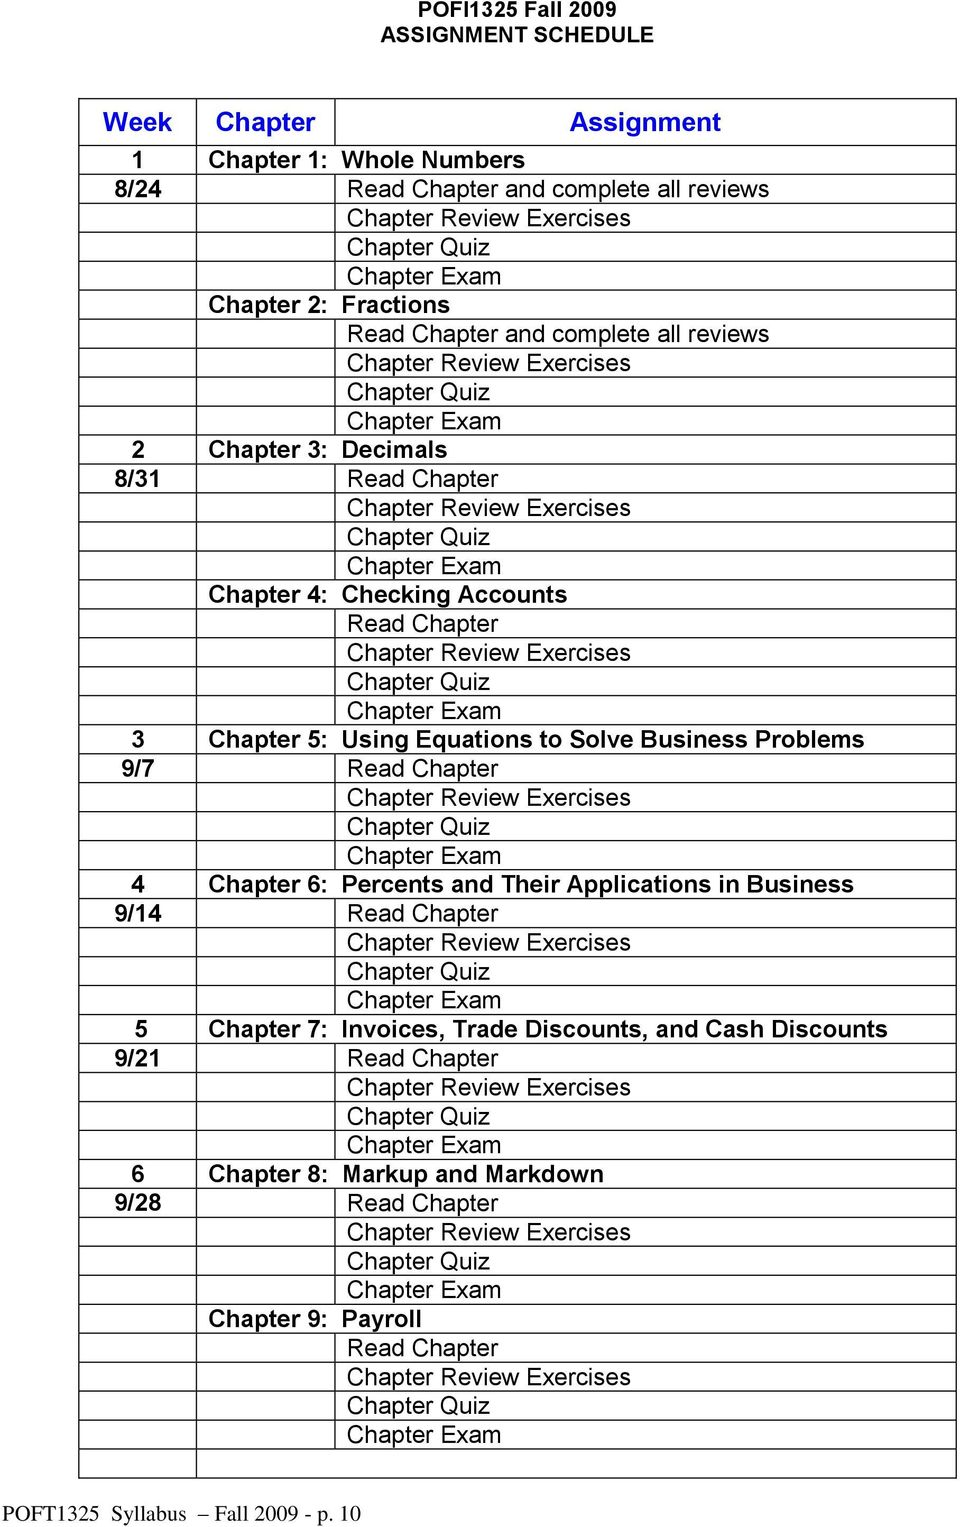 Solve Business Problems 9/7 Read Chapter 4 Chapter 6: Percents and Their Applications in Business 9/14 Read Chapter 5 Chapter 7: Invoices, Trade